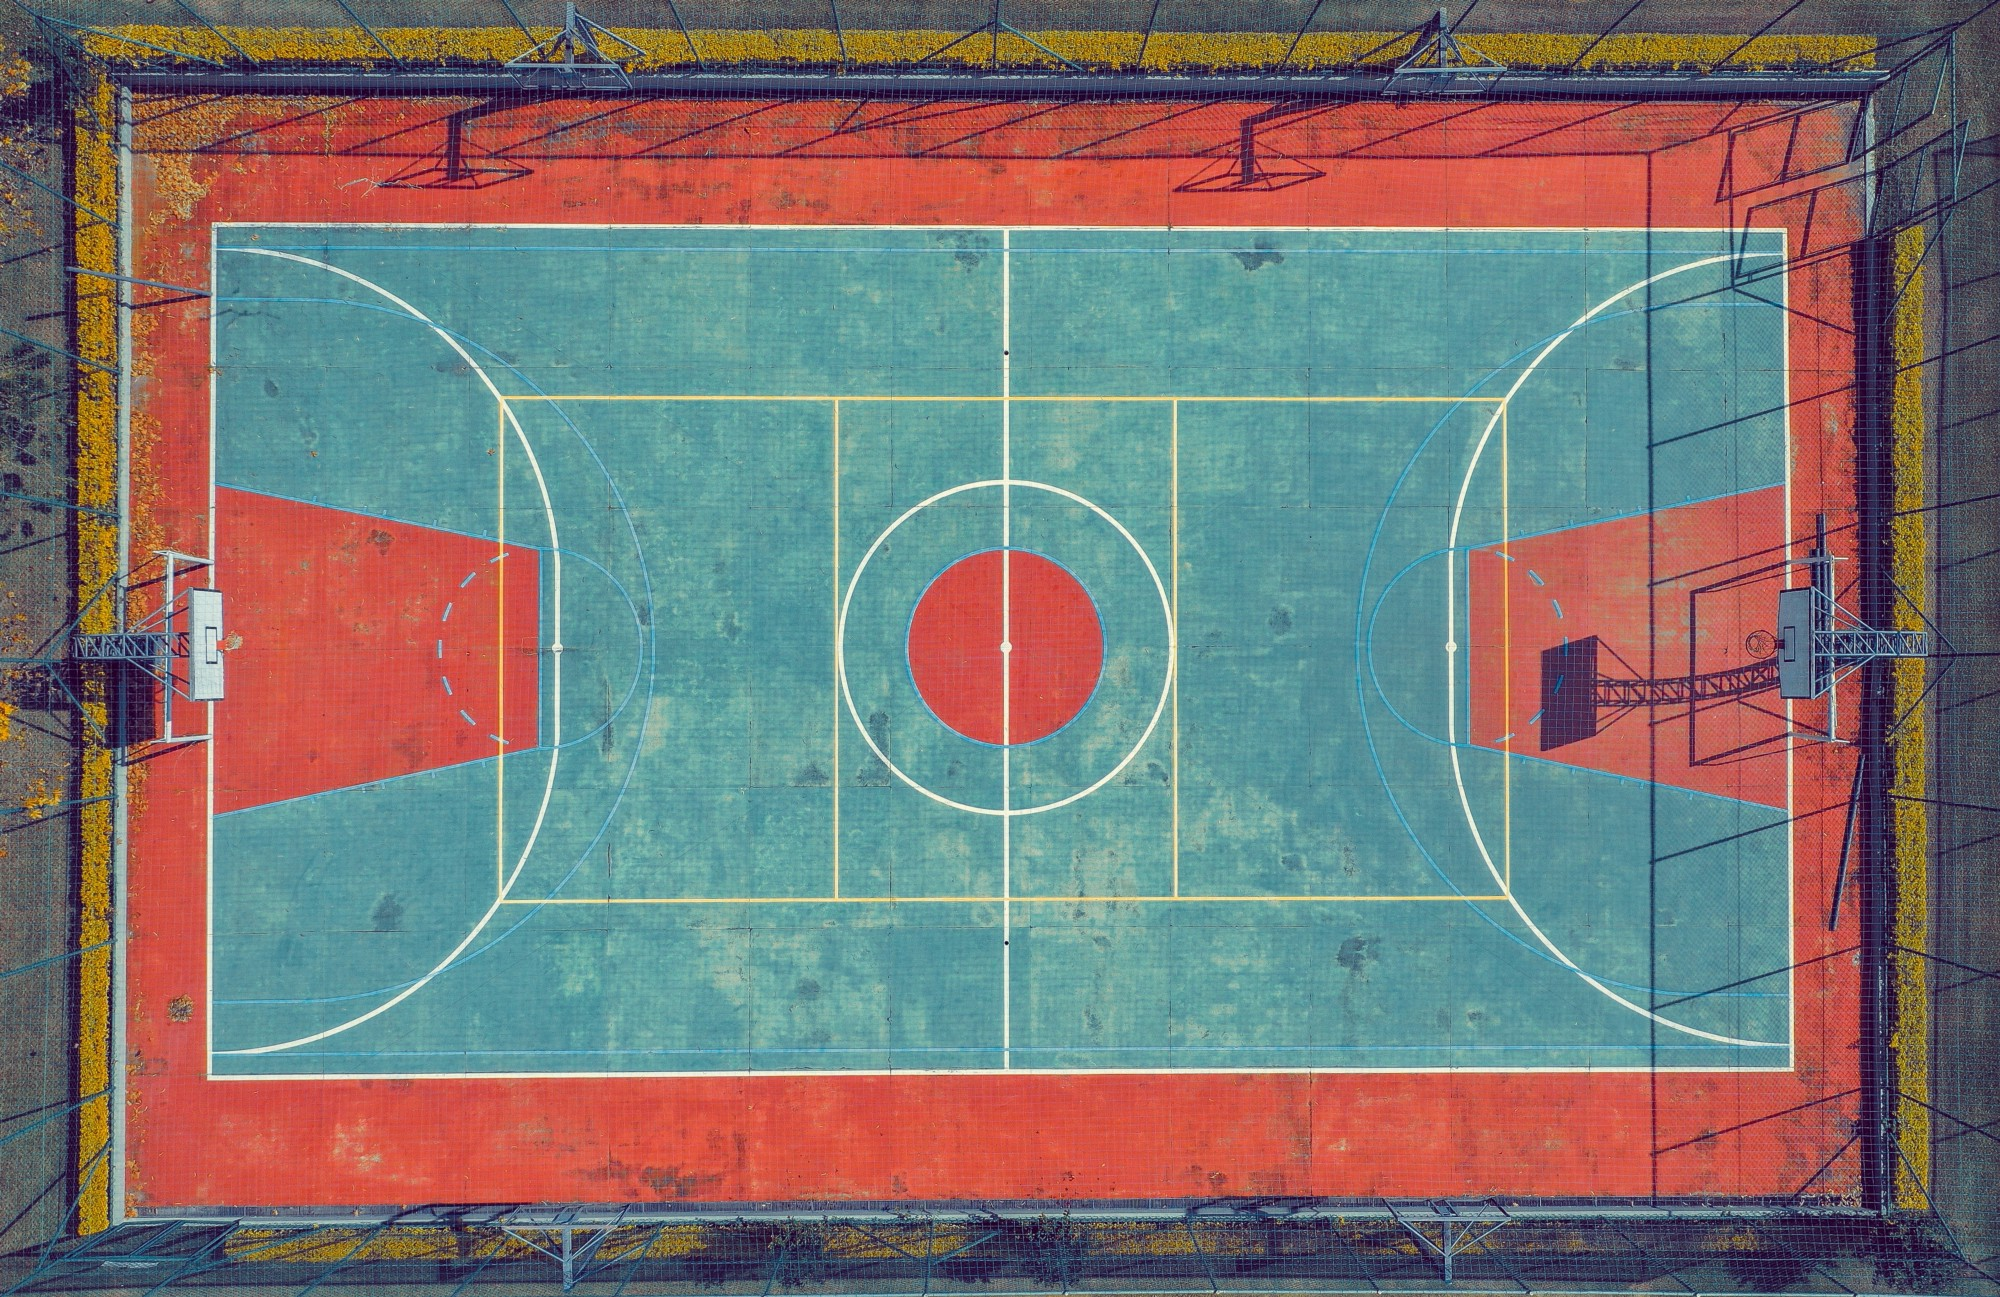 Basketball Court : Photo by sergio souza from Pexels